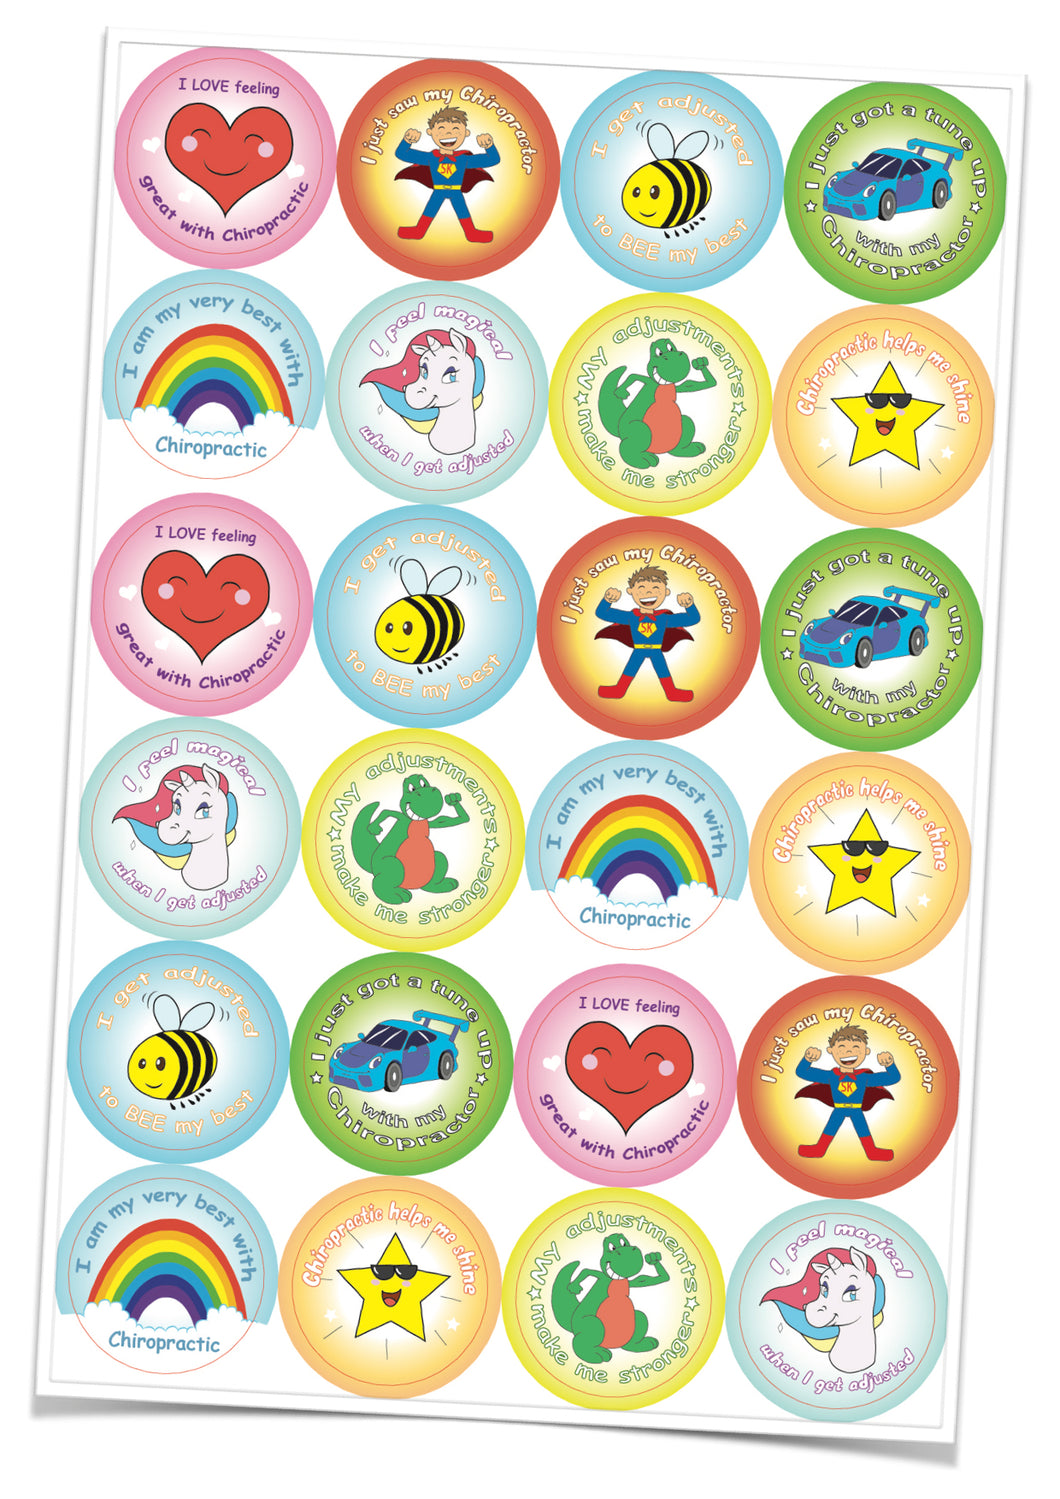 Biodegradable Stickers for Chiro' Kids